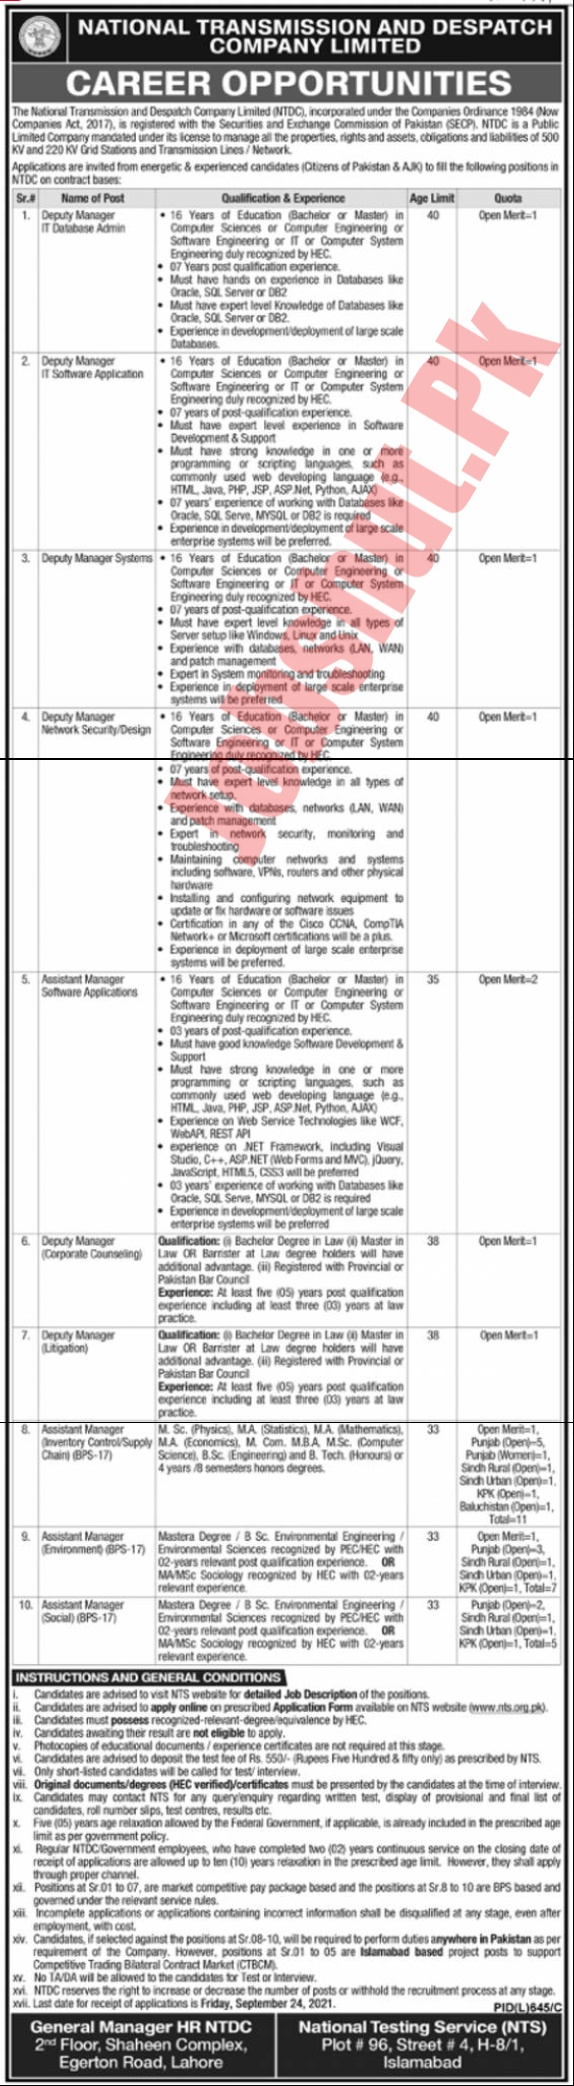 National Transmission and Despatch CO Ltd jobs advertisement